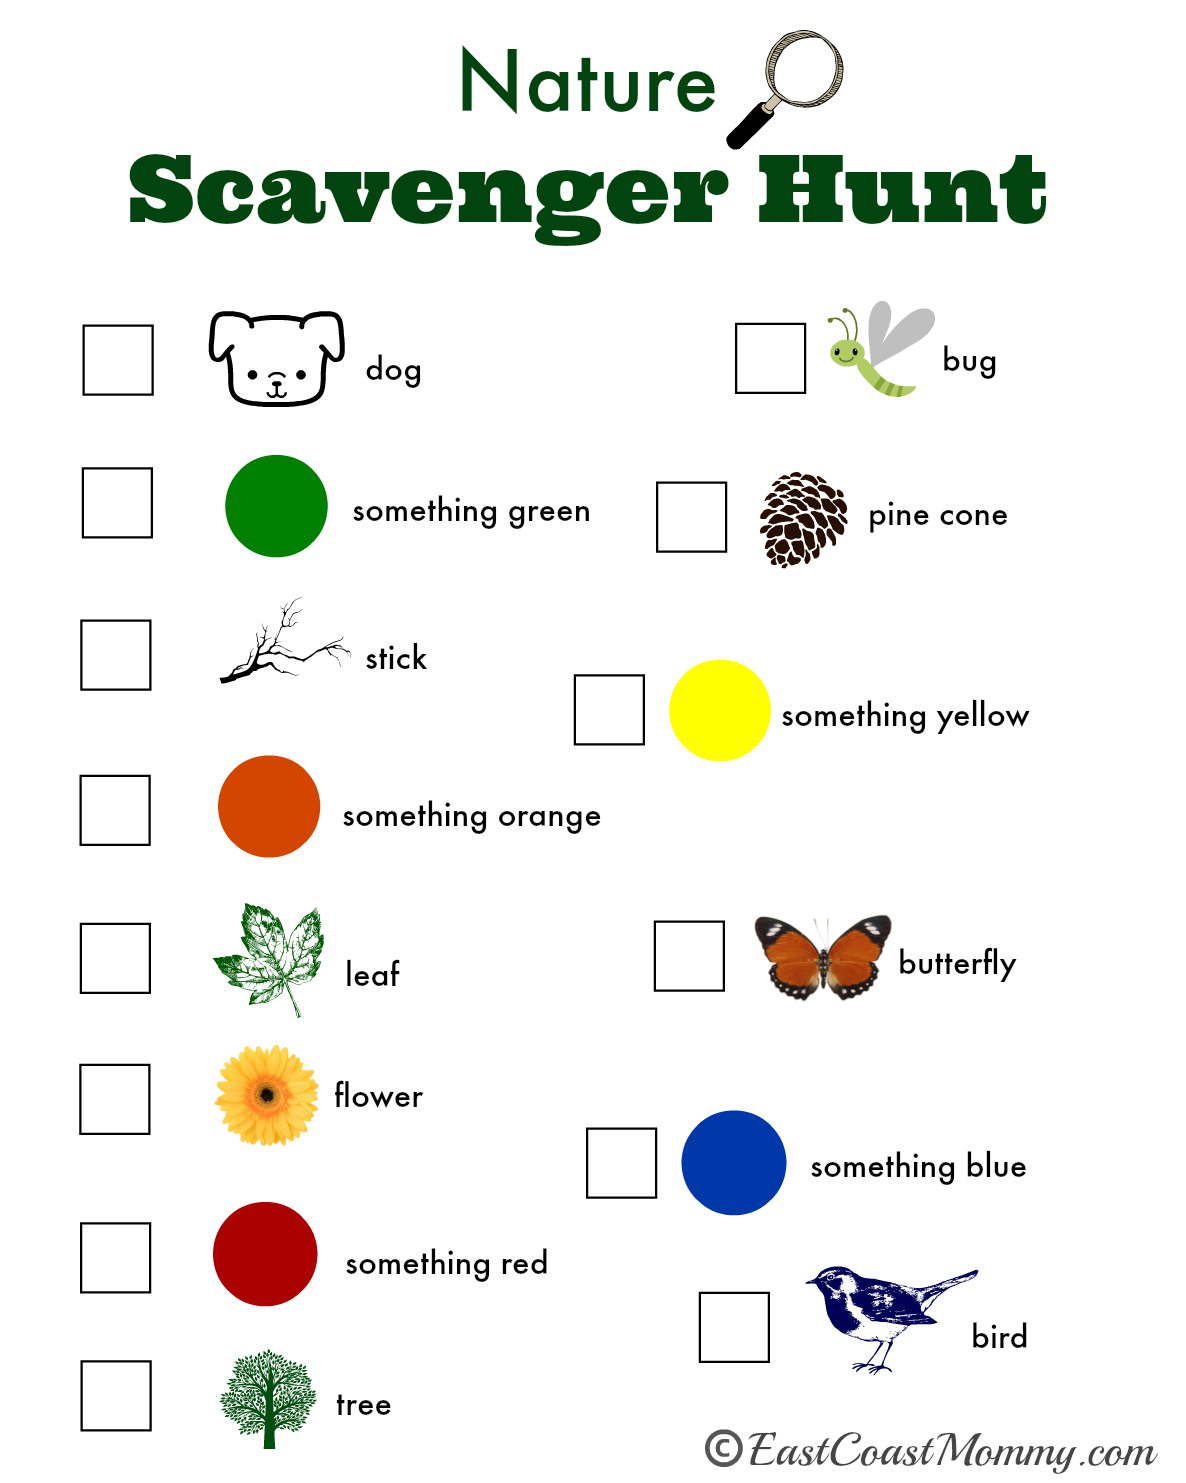 Free printable Holiday Scavenger List |Scavenger Hunt Printable Games Worksheets